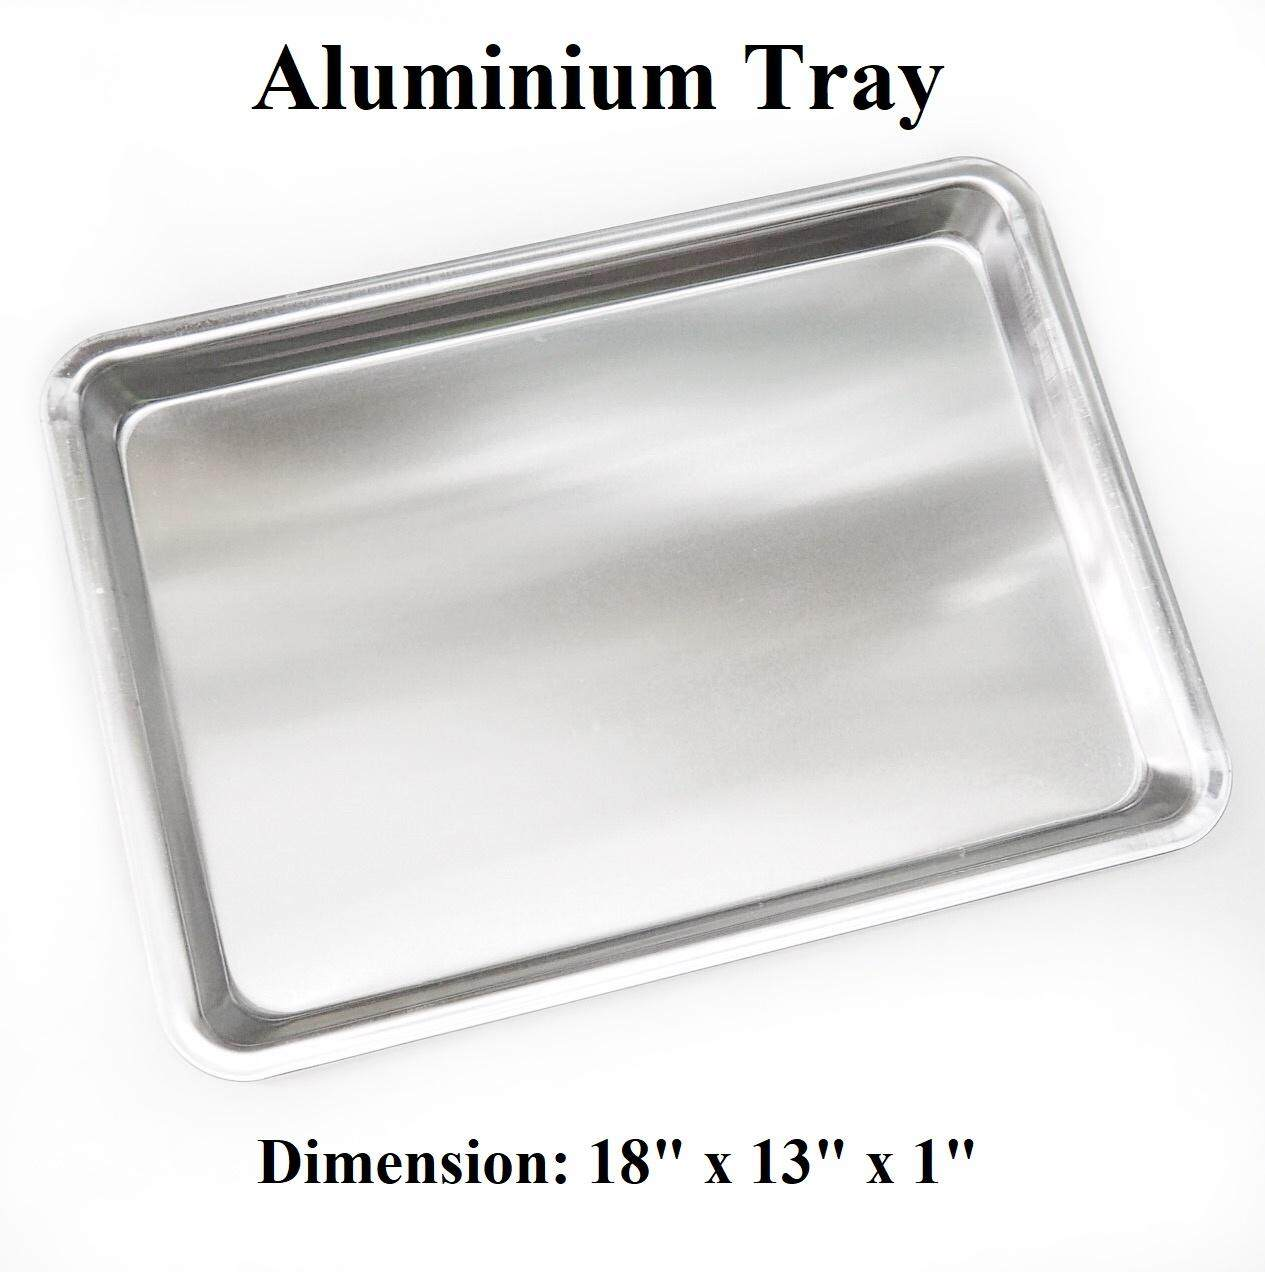 Home Baking Trays Pans Buy At Best Deep Fryer Aluminium Maspion 18 Cm Tray Bakeware Oven Sheet Nonstick Pan For Cookies Pizza And